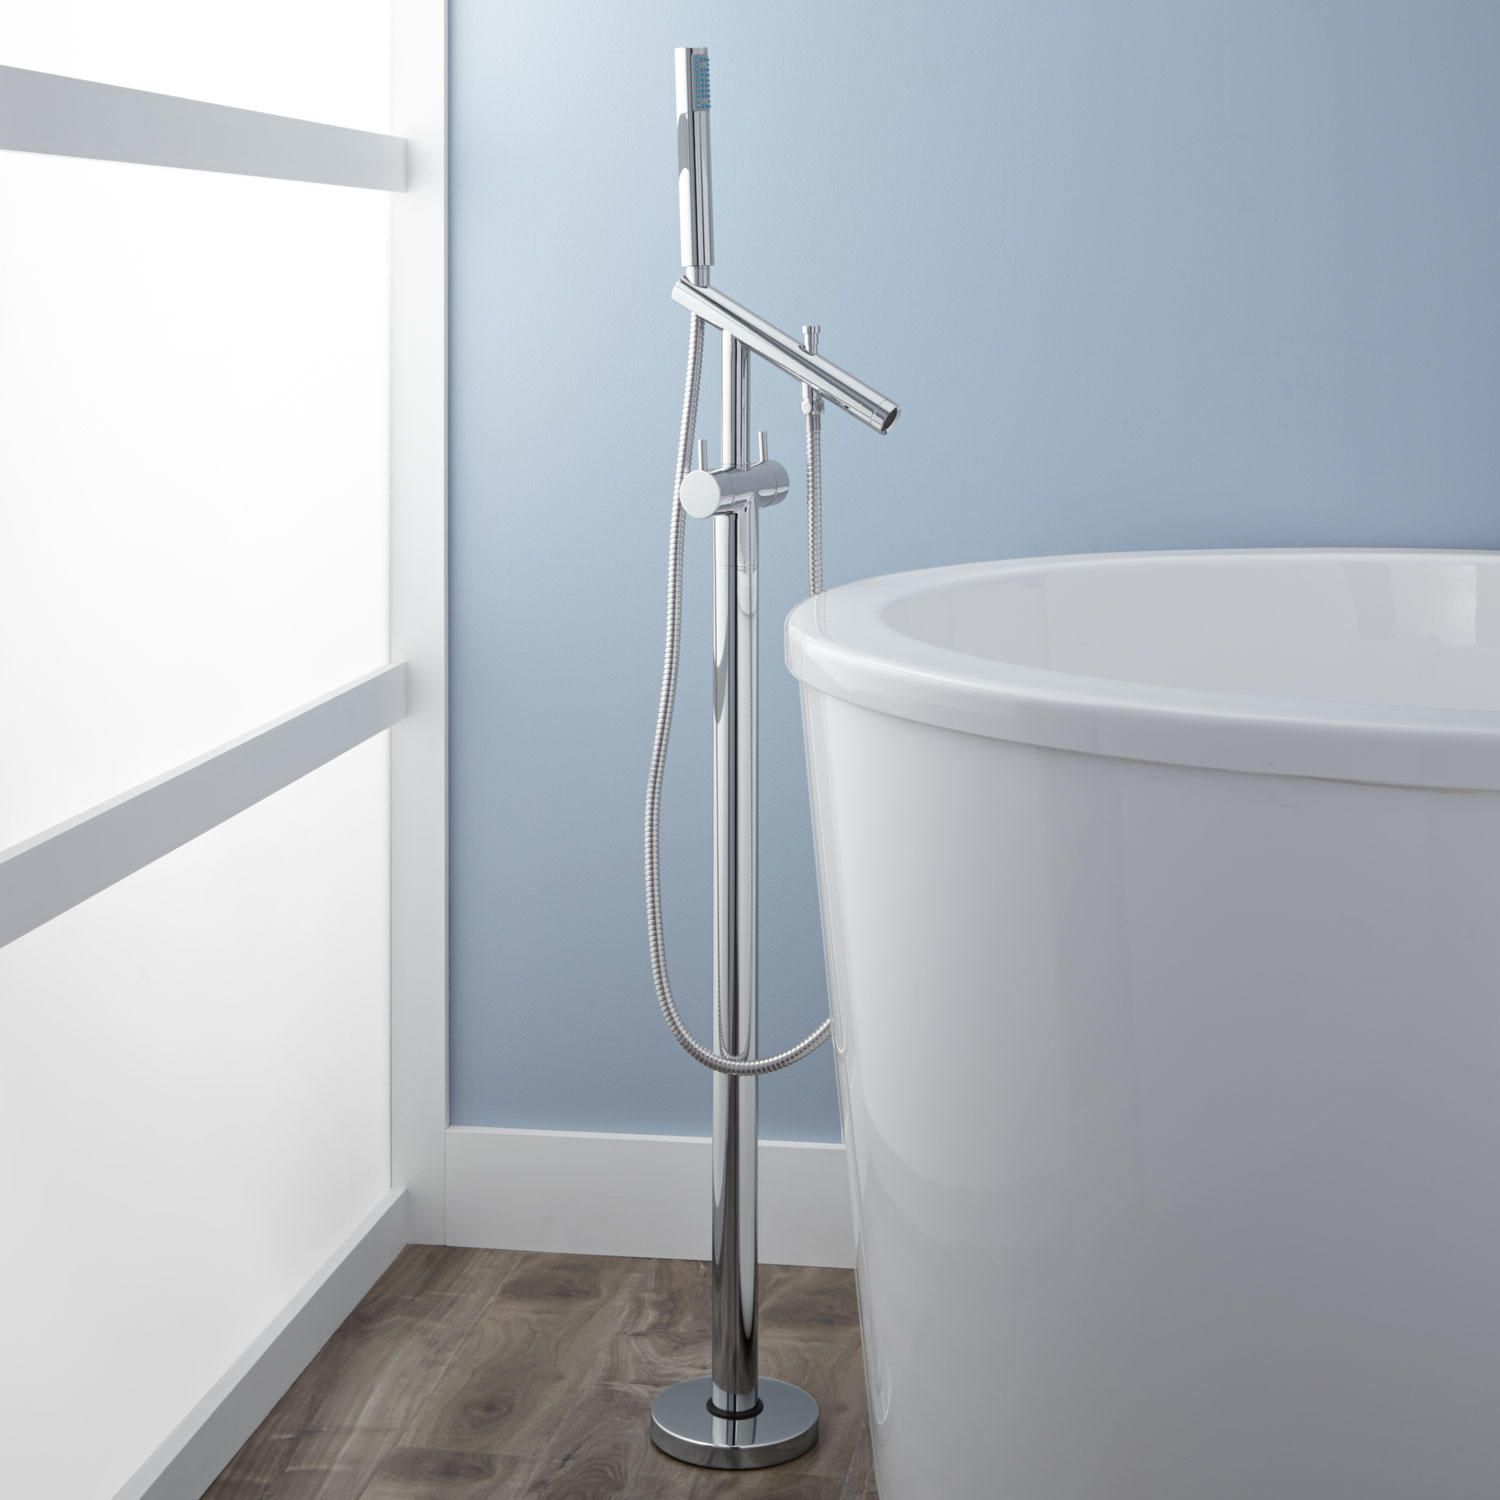 Westen Freestanding Tub Faucet | Freestanding tub, Tap and Products